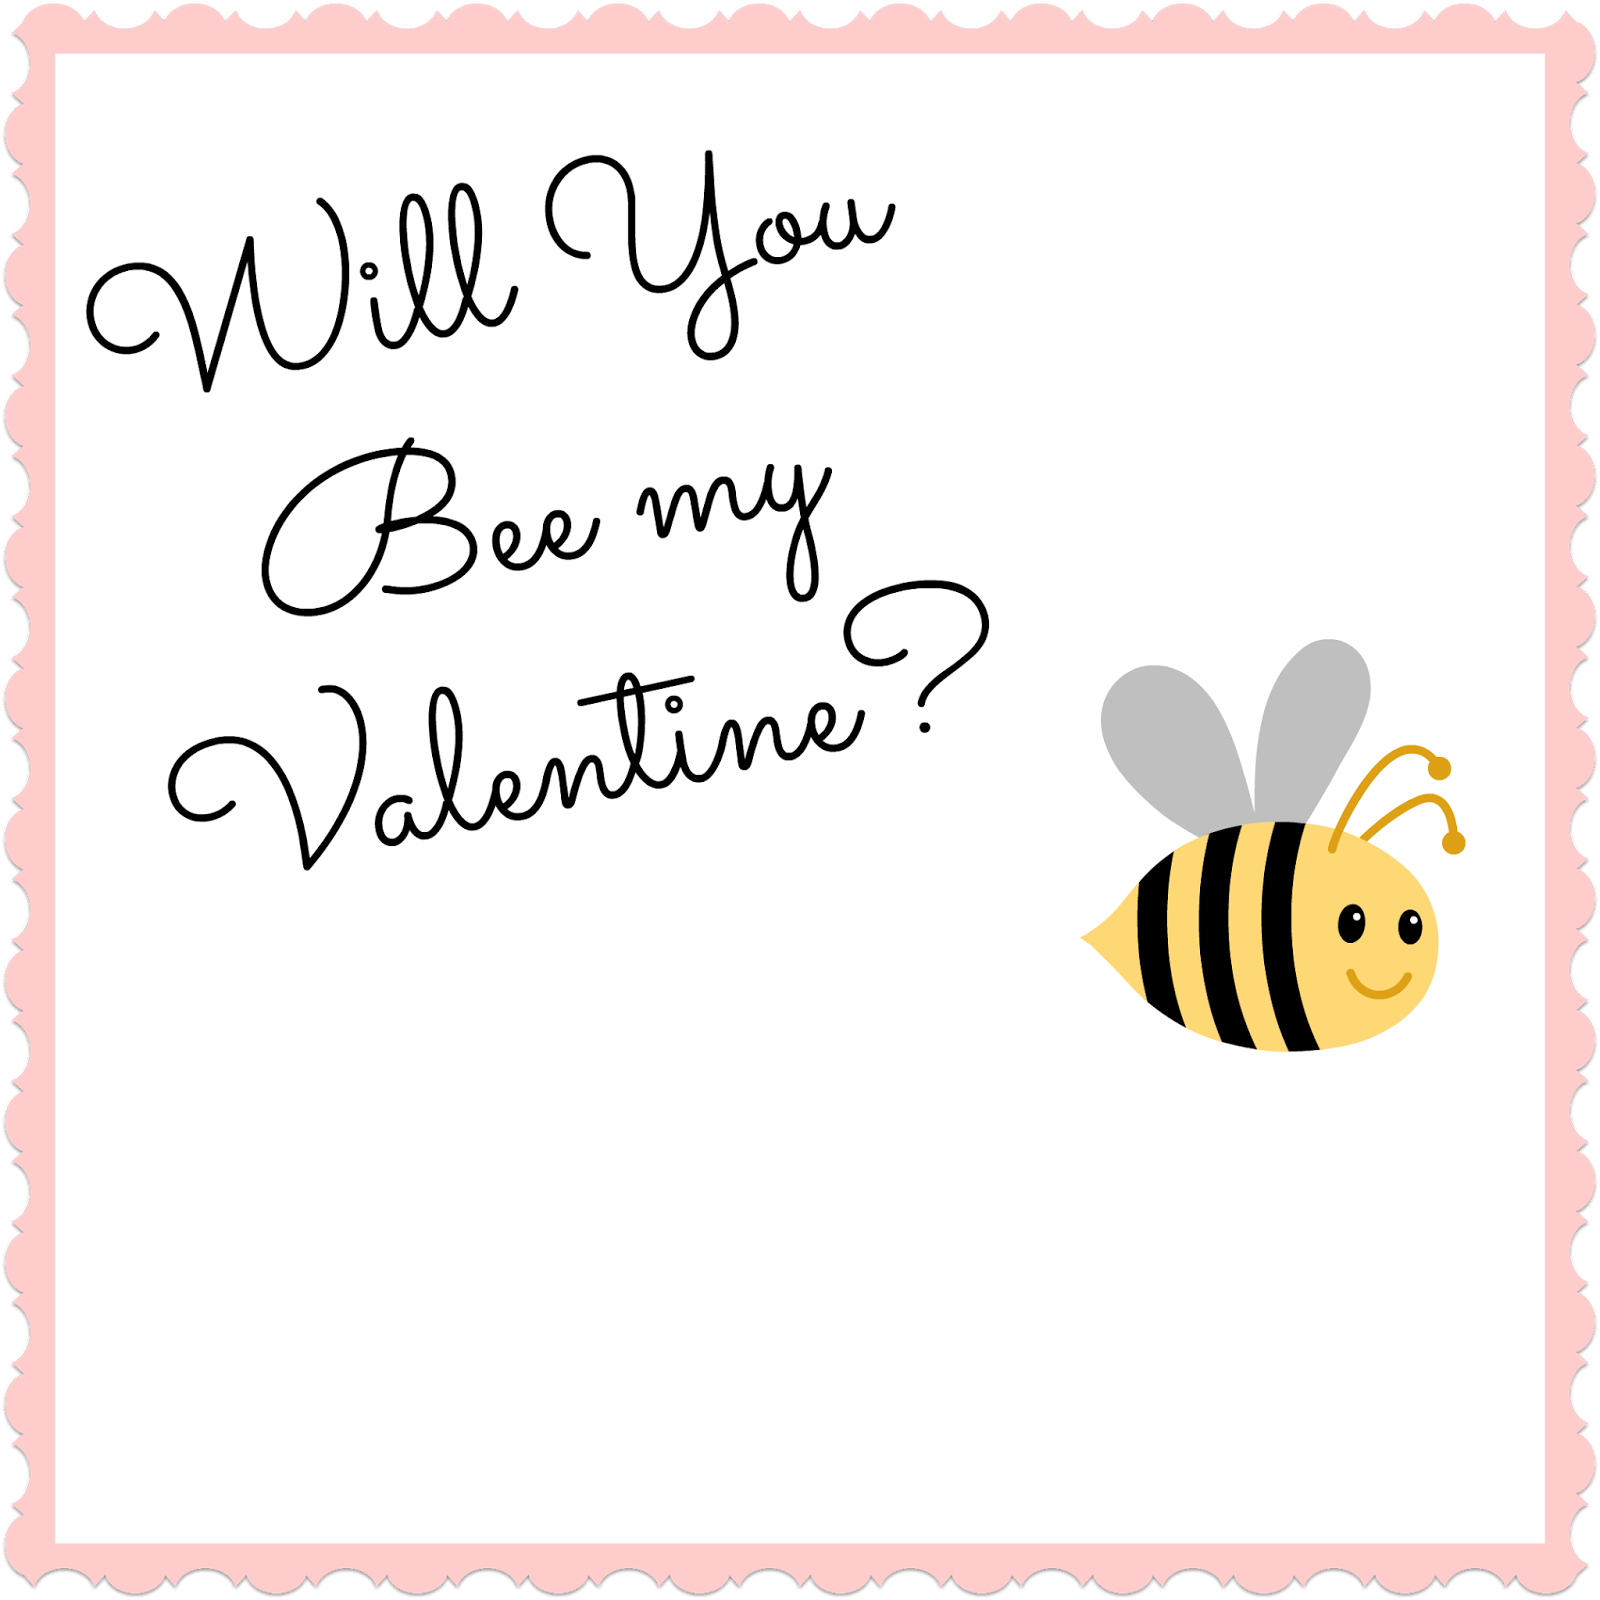 Will You BEE My Valentine? Attach A Burtu0027s Bees Chapstick Or A Jar Of Honey